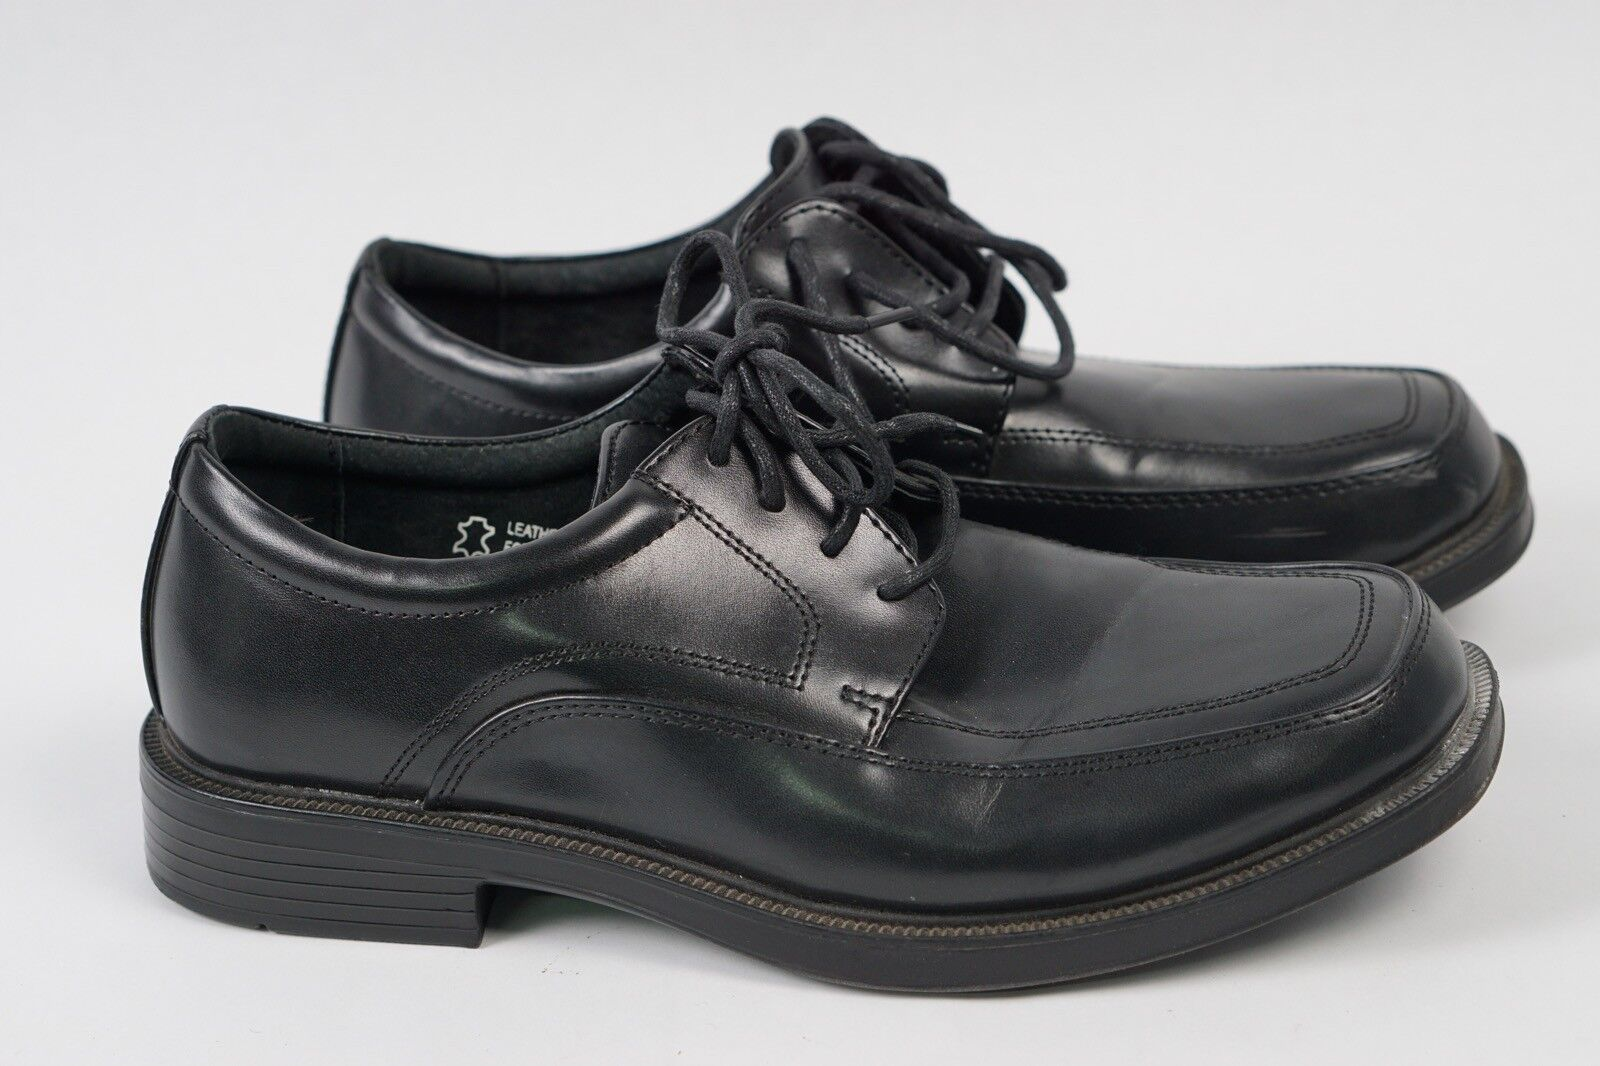 Men's Dexter Comfort Spencer Casual Oxford 149523 Black Work Casual Spencer Shoes Size 7.5 a5b9b3